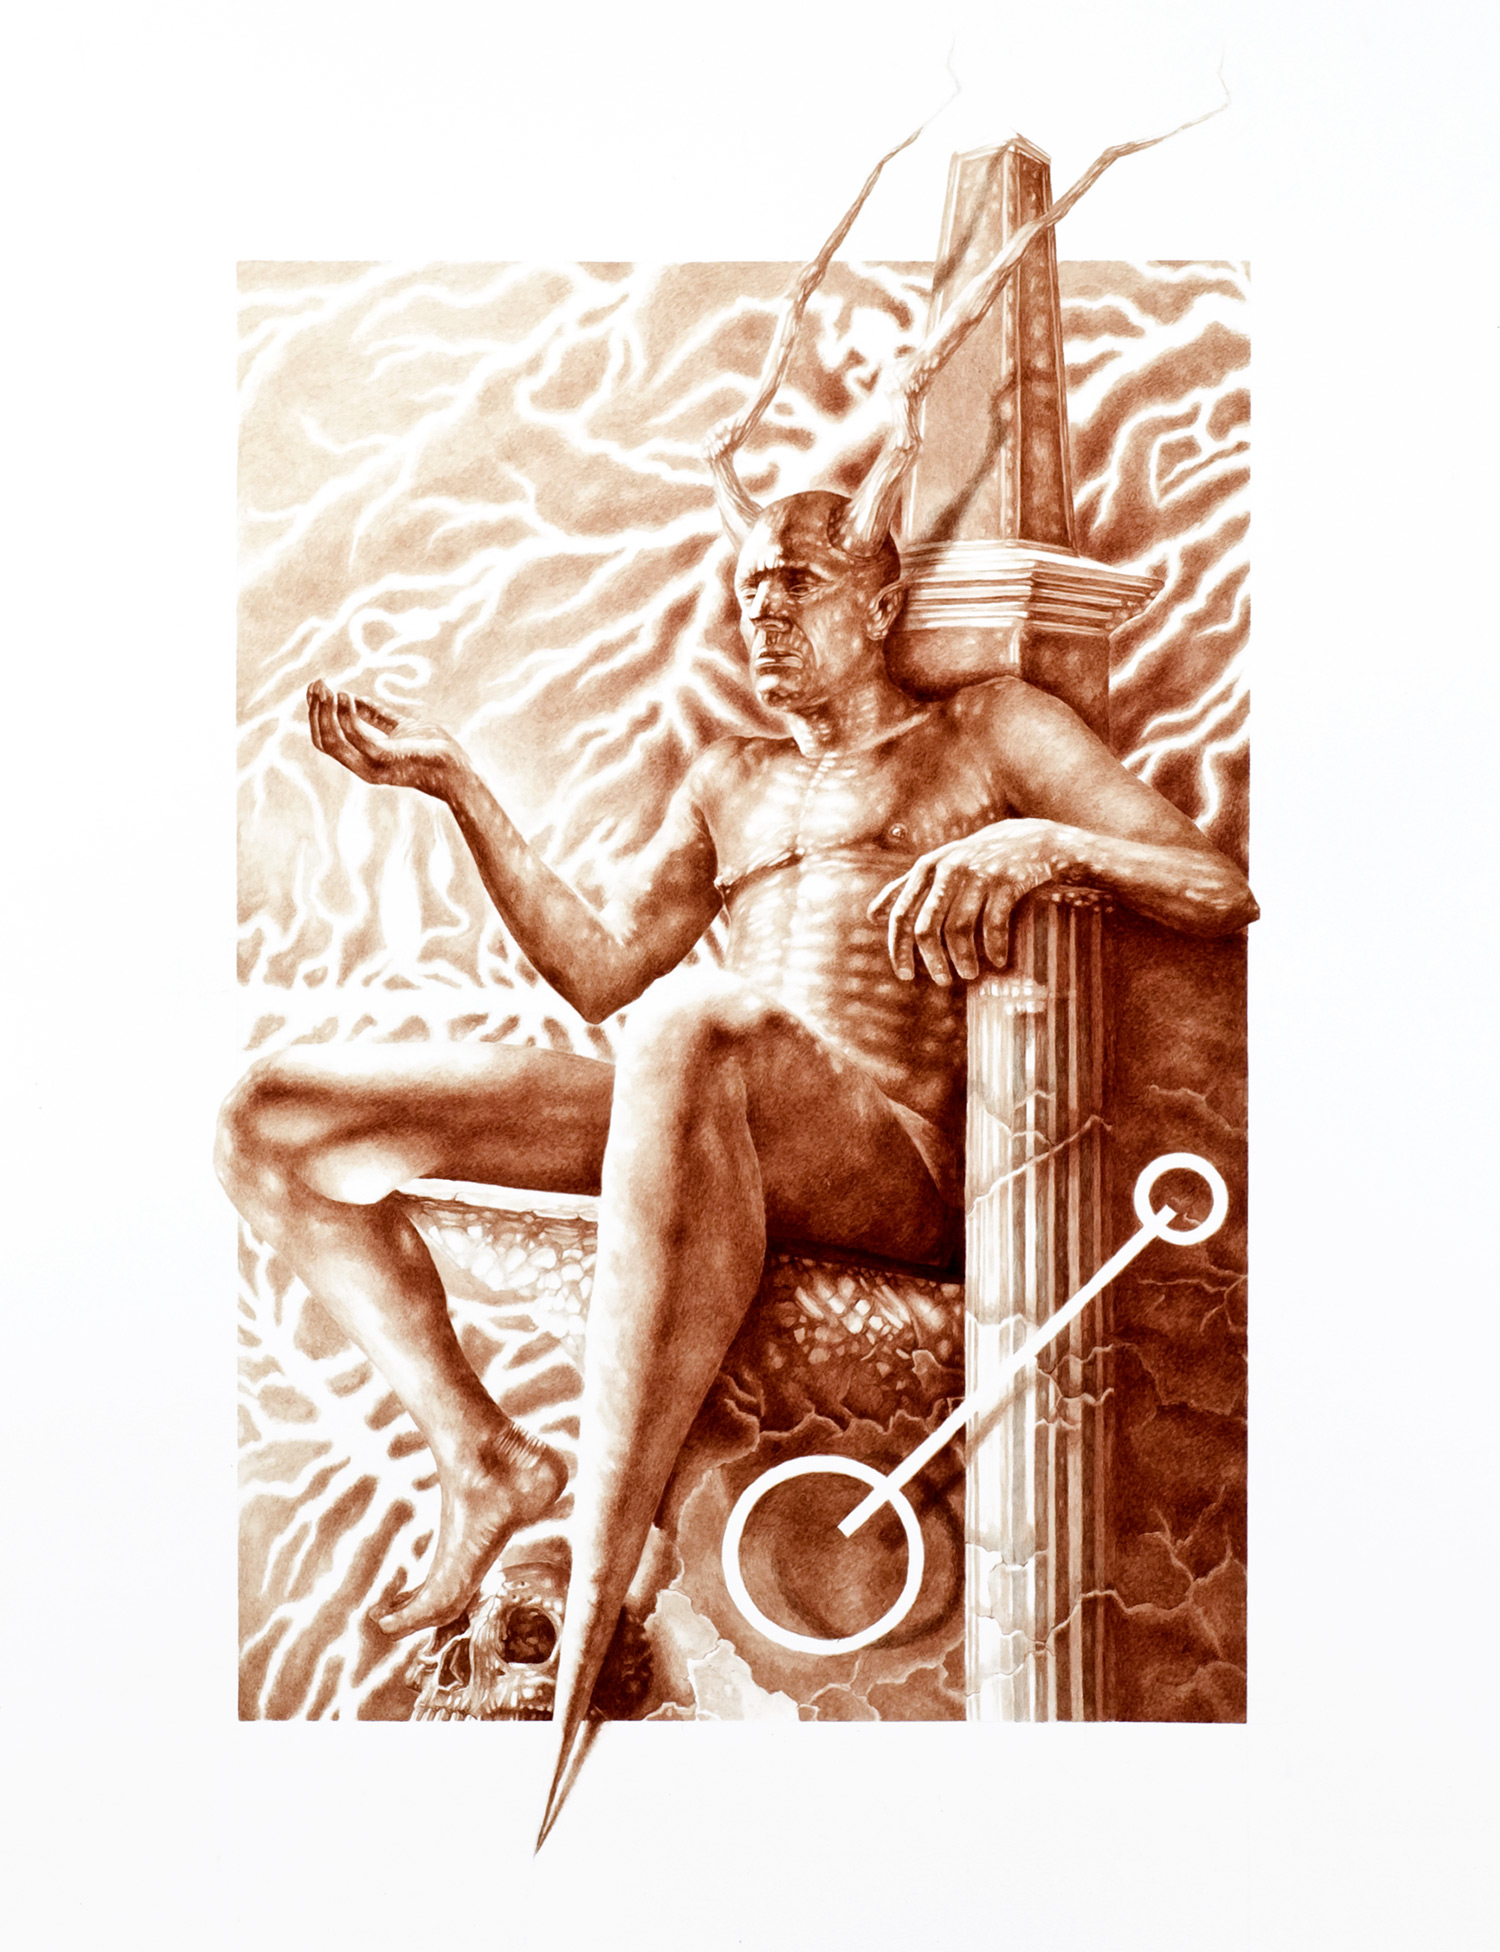 Vincent Castiglia - Throne of Stone, blood painting